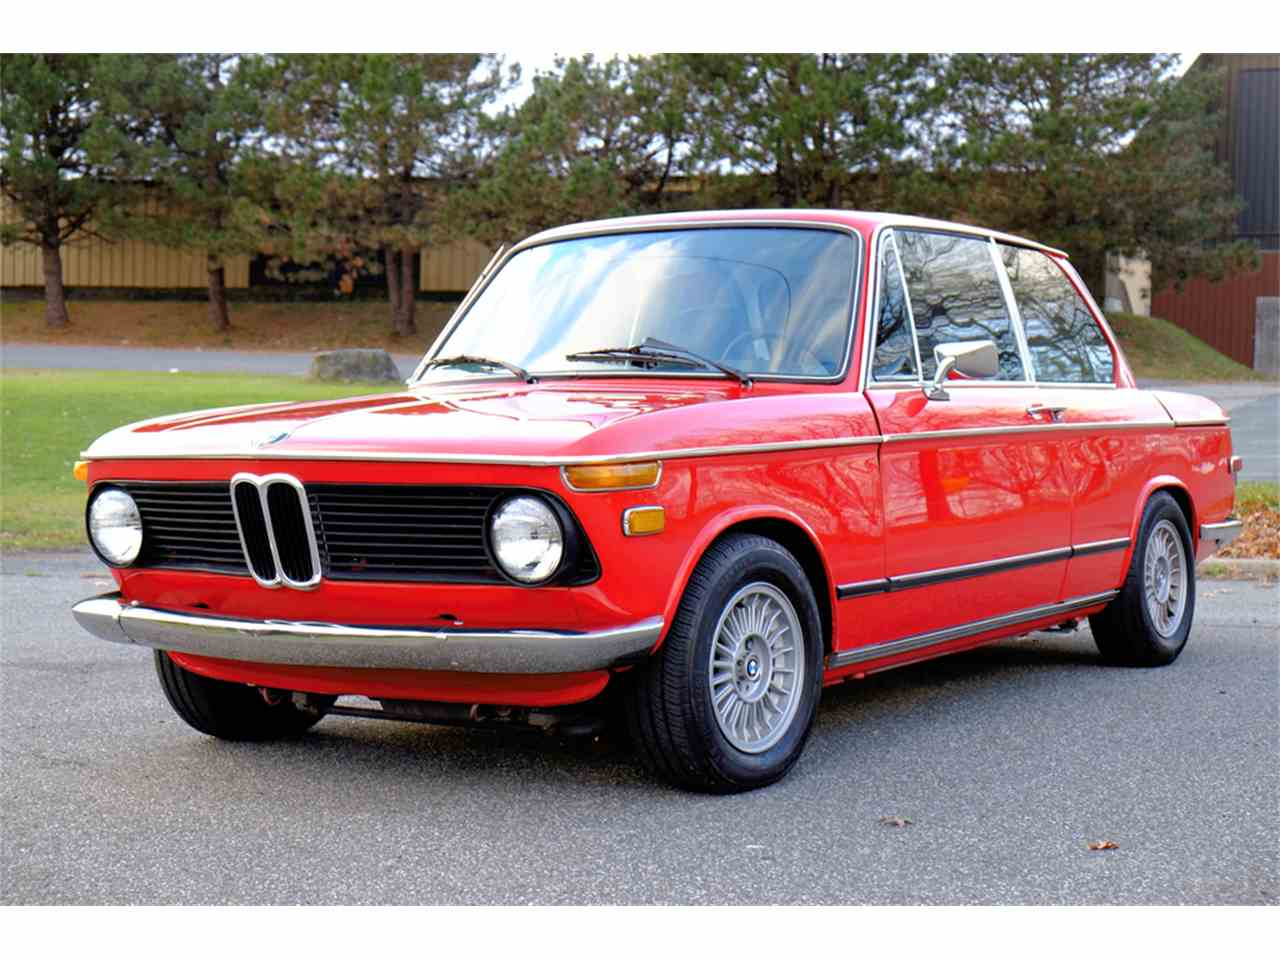 Bmw 2002 For Sale >> 1975 Bmw 2002 For Sale Classiccars Com Cc 937210